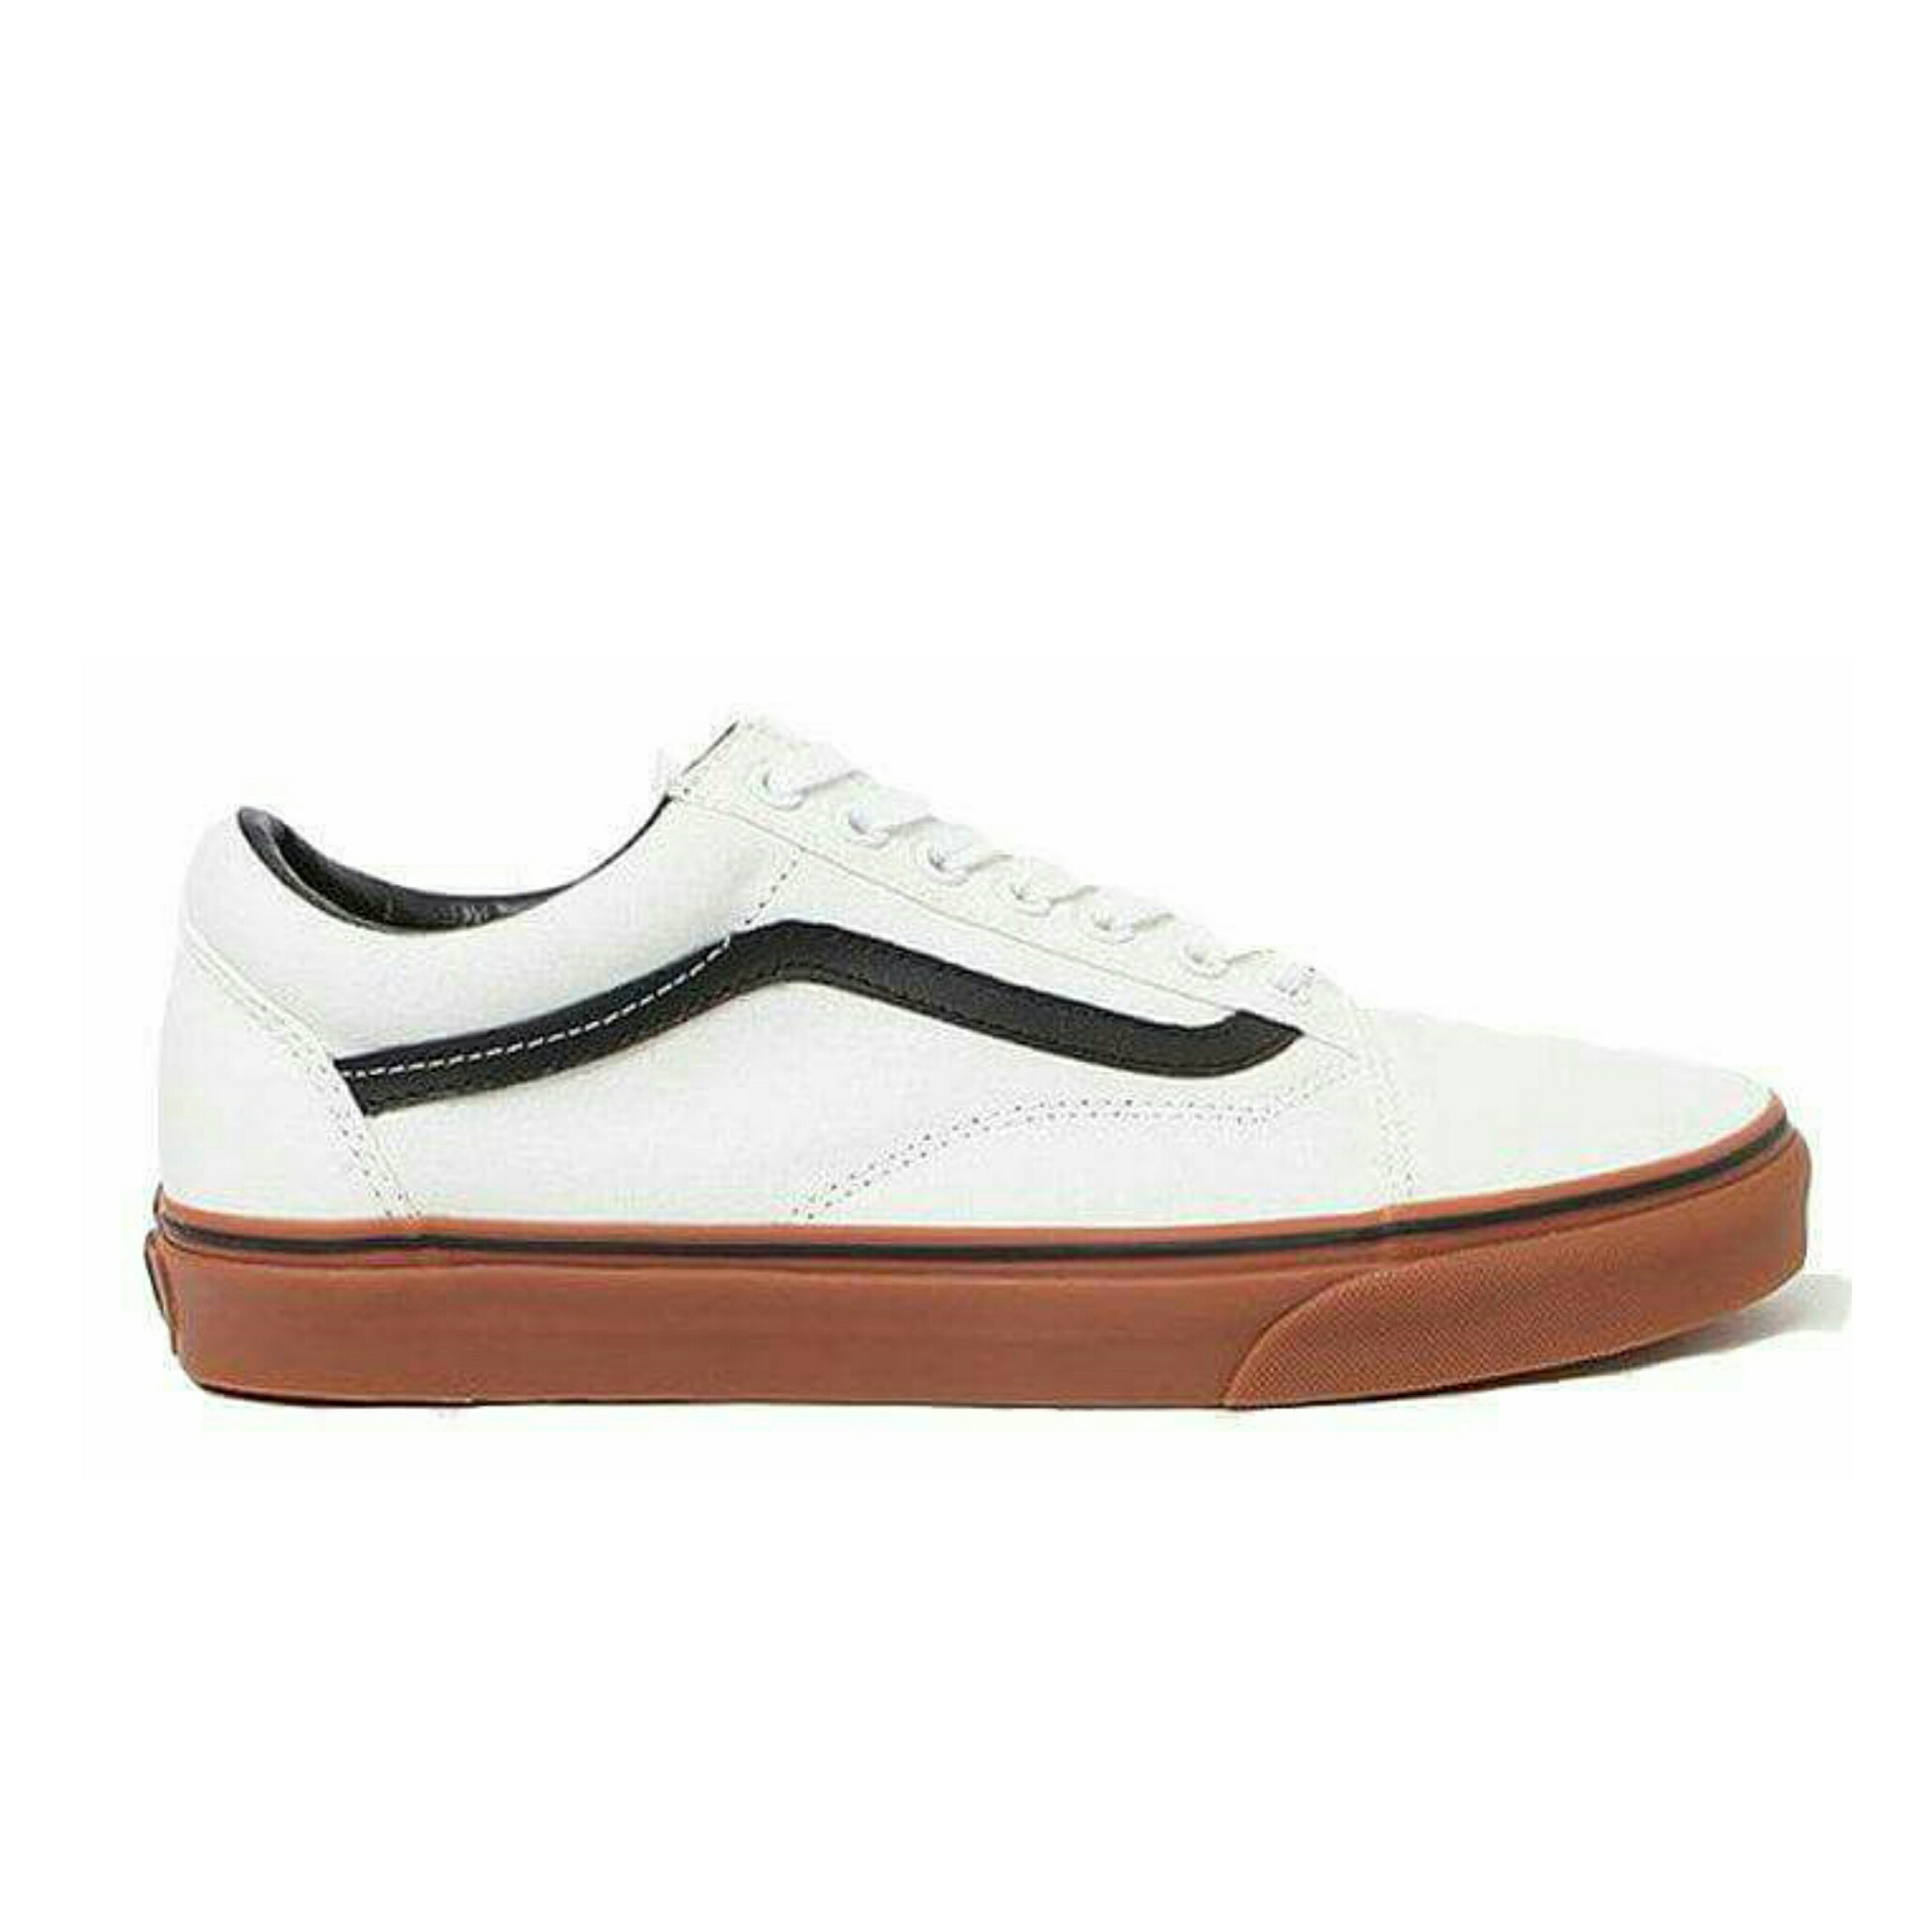 c575836ba7 Vans Old Skool White And Black Gum Sole   Best Prices   Shoes Online ...